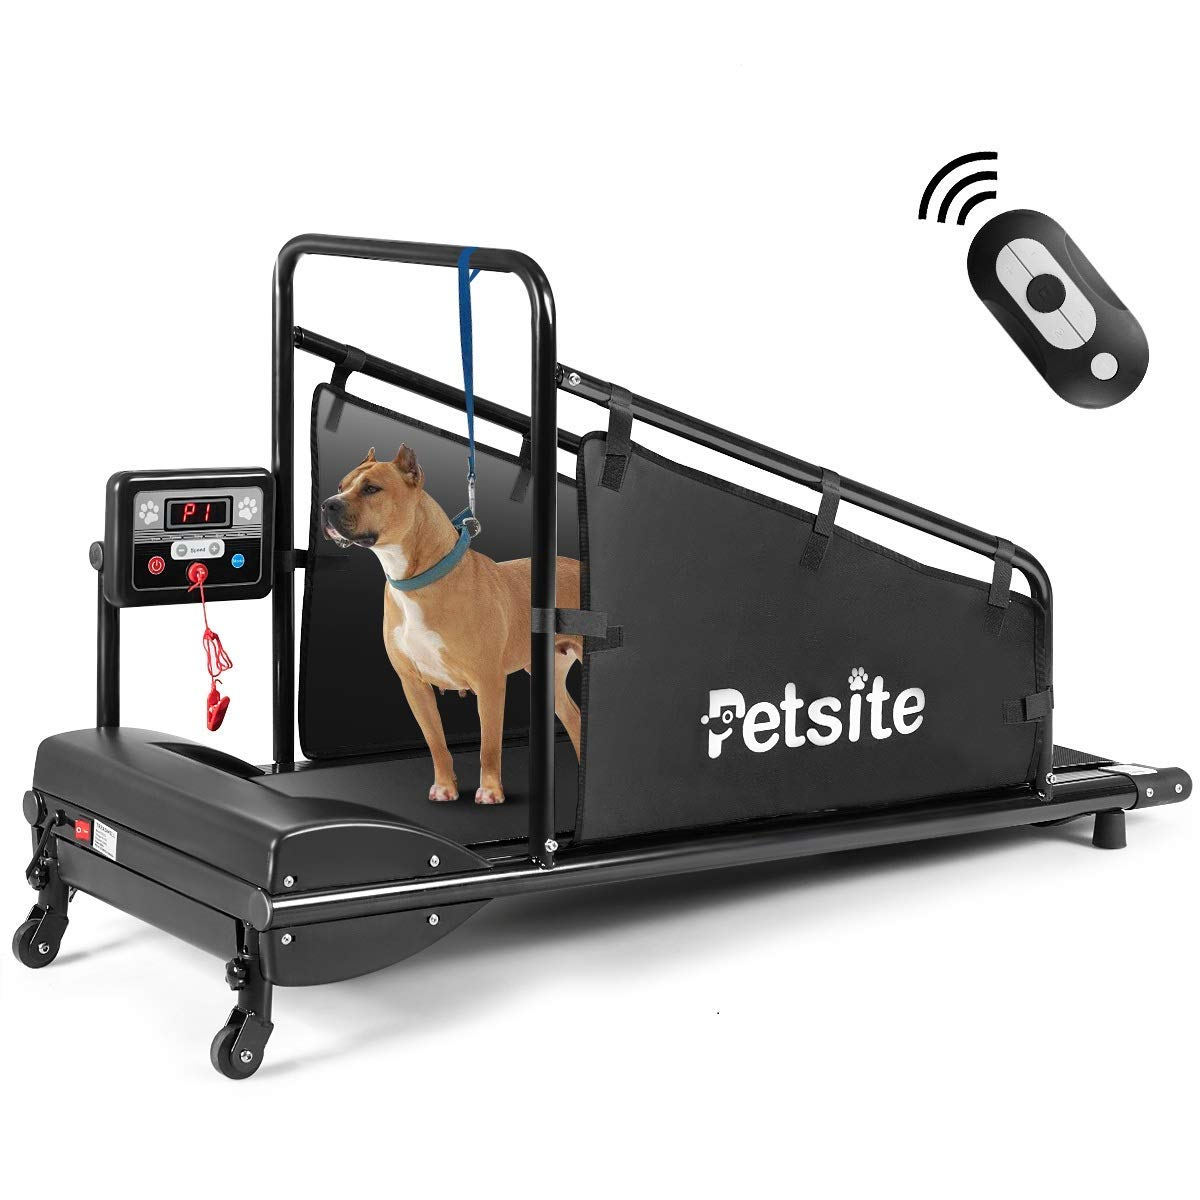 Goplus Dog Treadmill, Fitness Pet Treadmill Indoor Exercise for Dogs Up to 200 lbs, Pet Exercise Equipment with Remote Control, 1.4'' Display Screen, Suitable for Small/Medium-Sized Dogs (Black) by Goplus